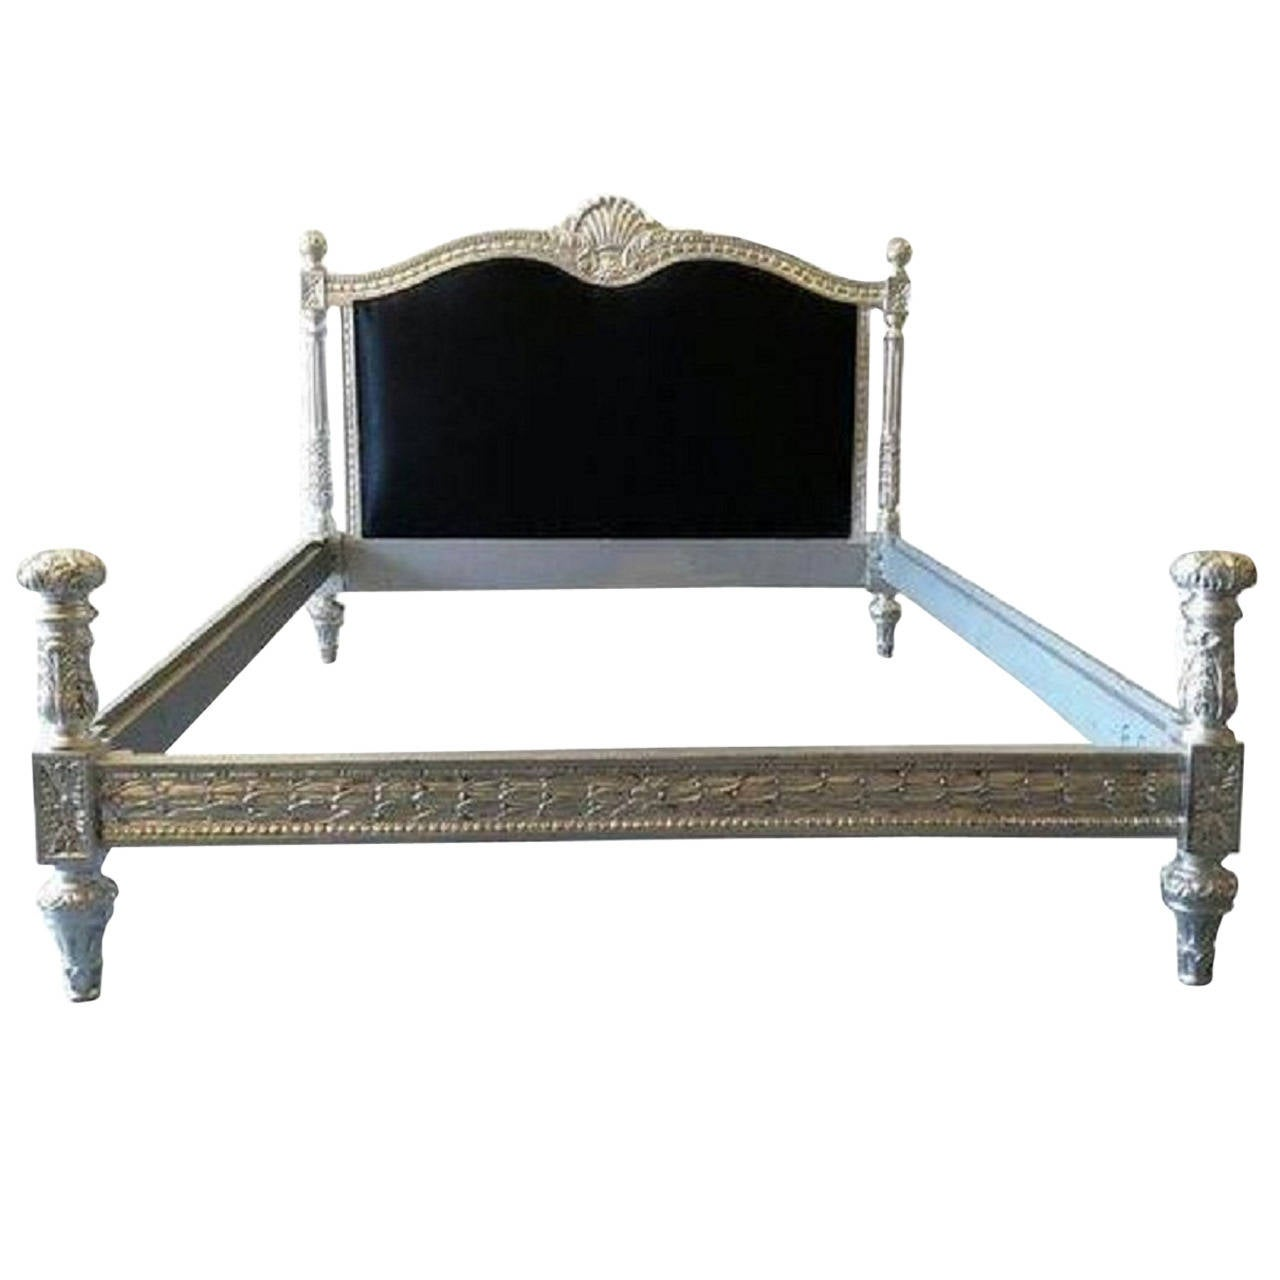 French bed silver and black velvet in louis xv baroque for French baroque bed